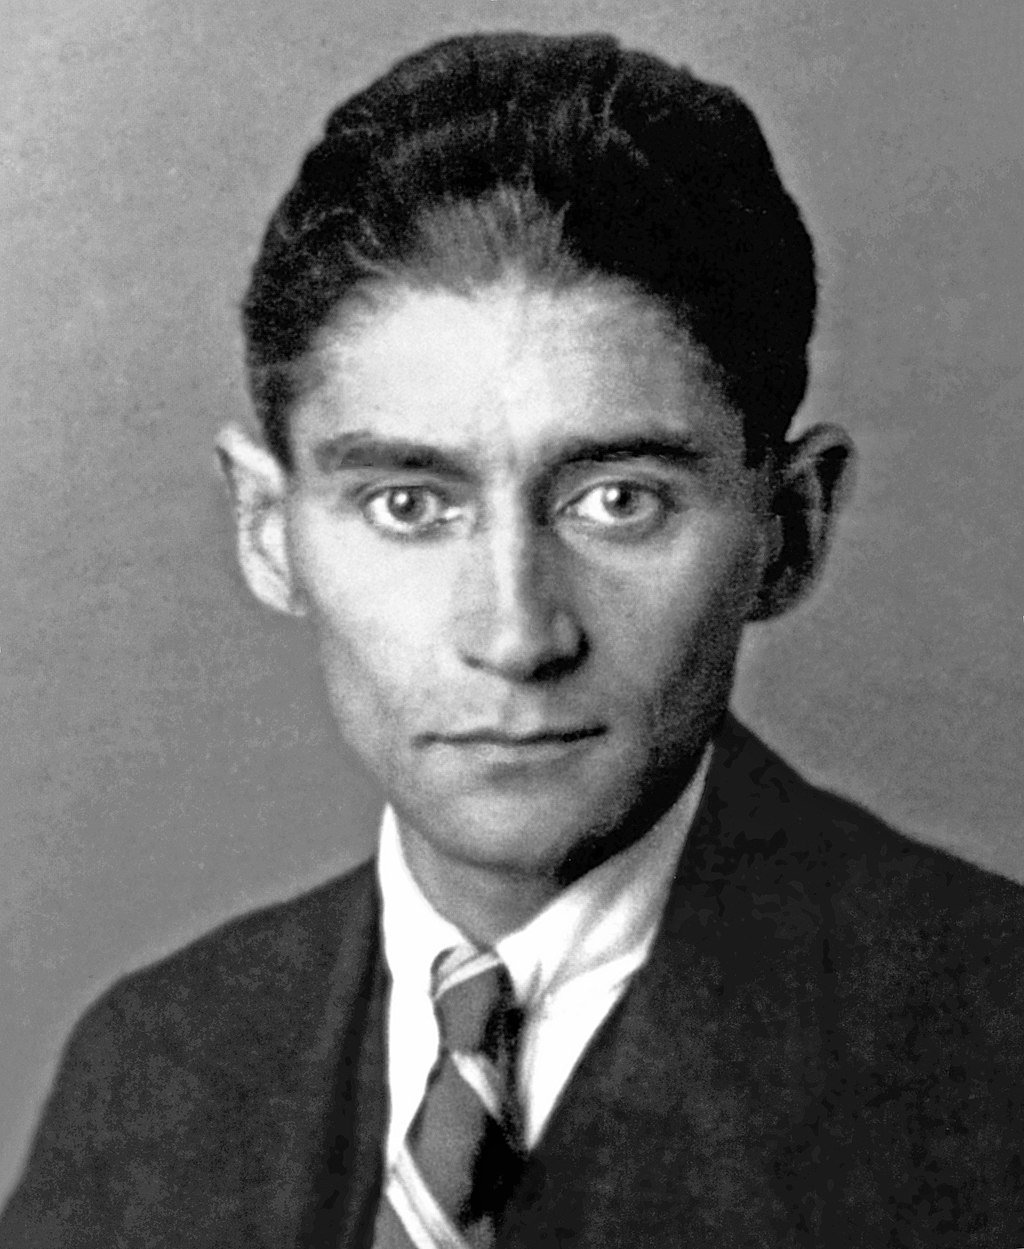 You Can Now Explore an Unseen Trove of Franz Kafka's Personal Papers Online